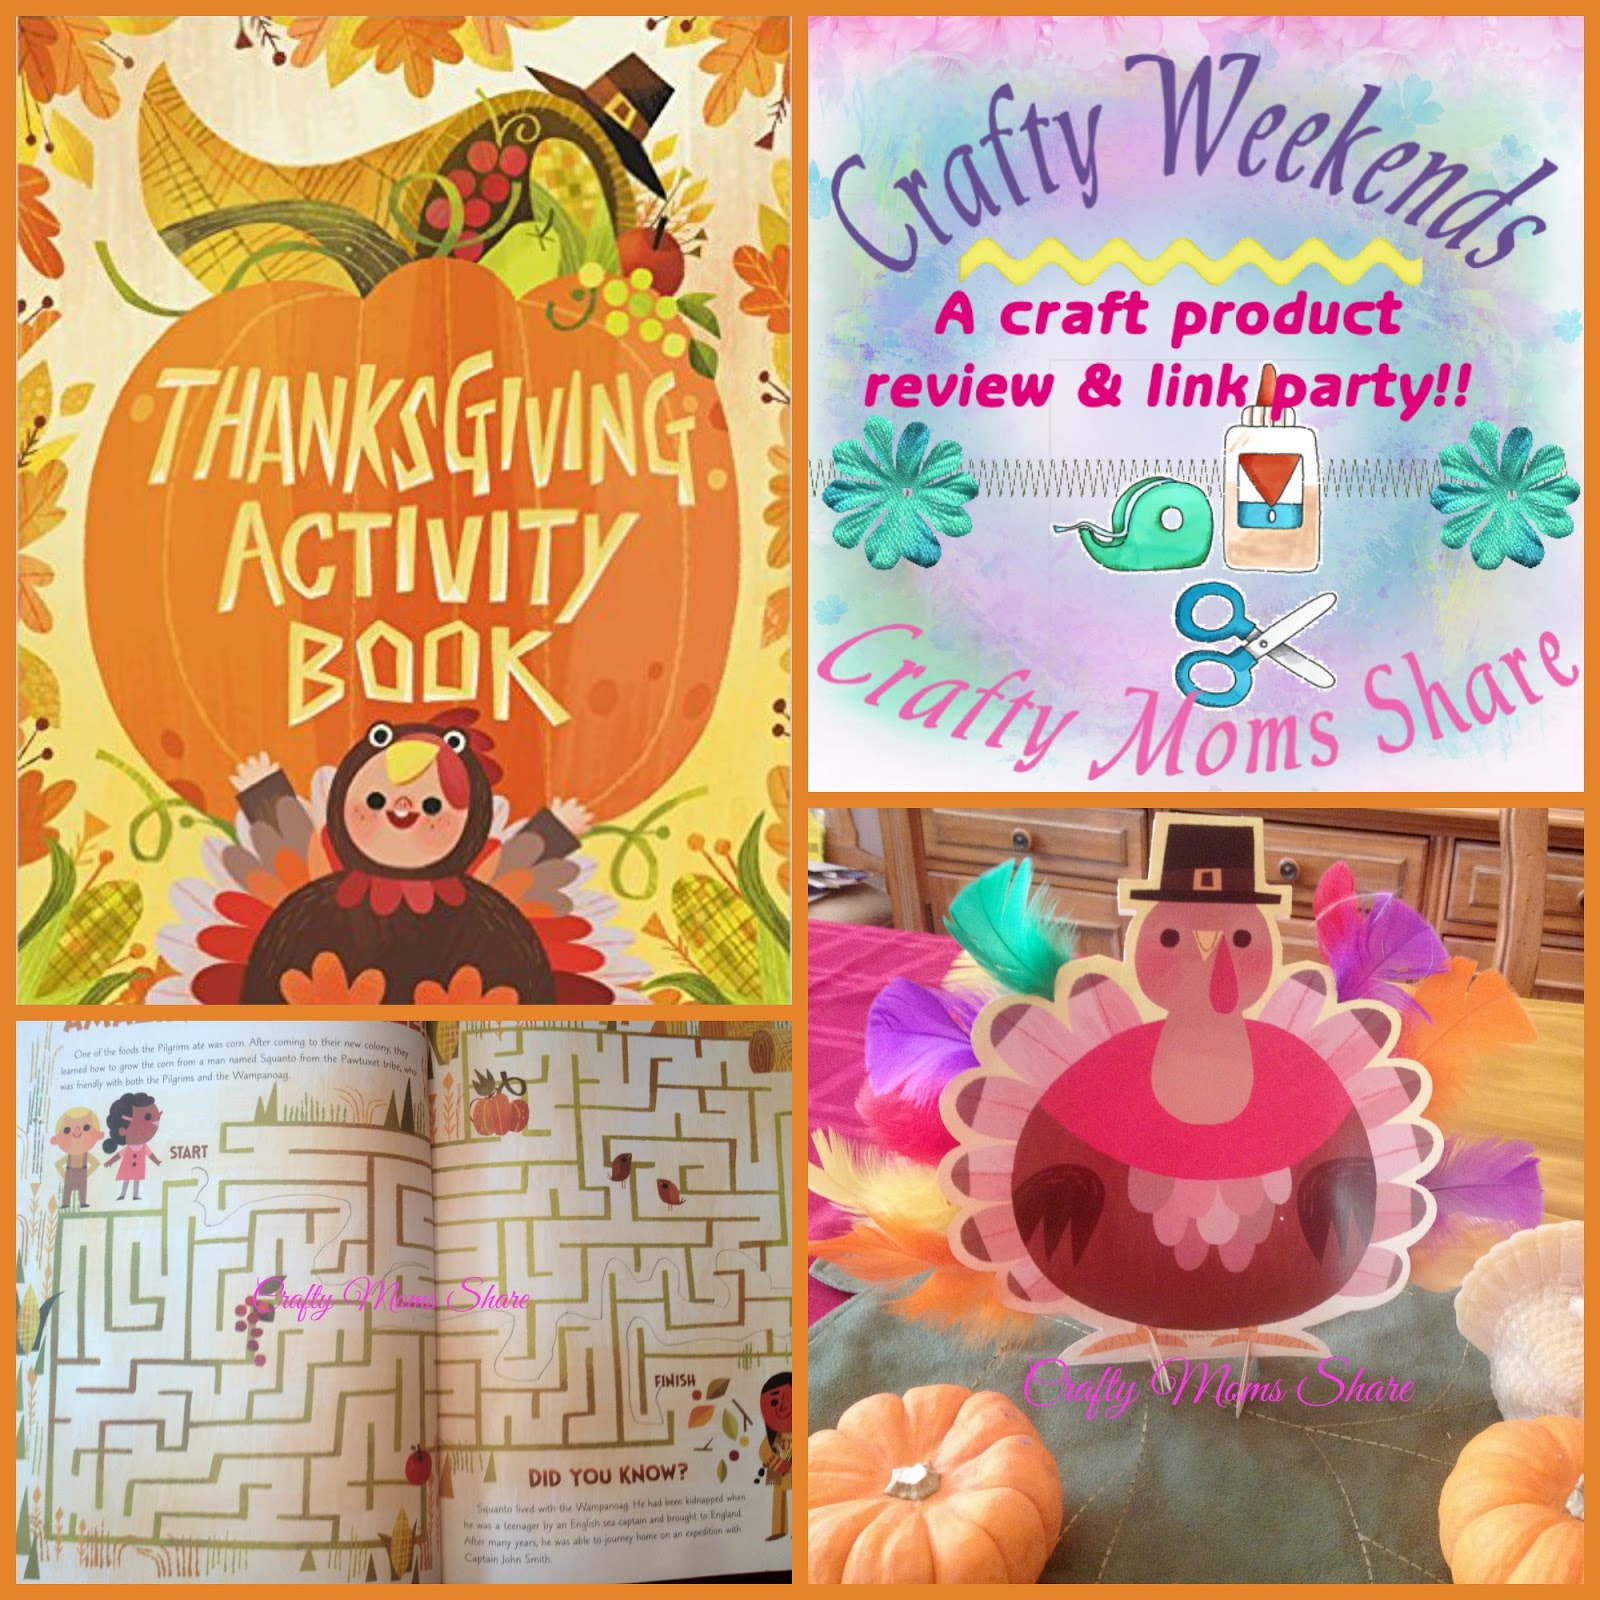 crafty moms share crafty weekend thanksgiving activity book